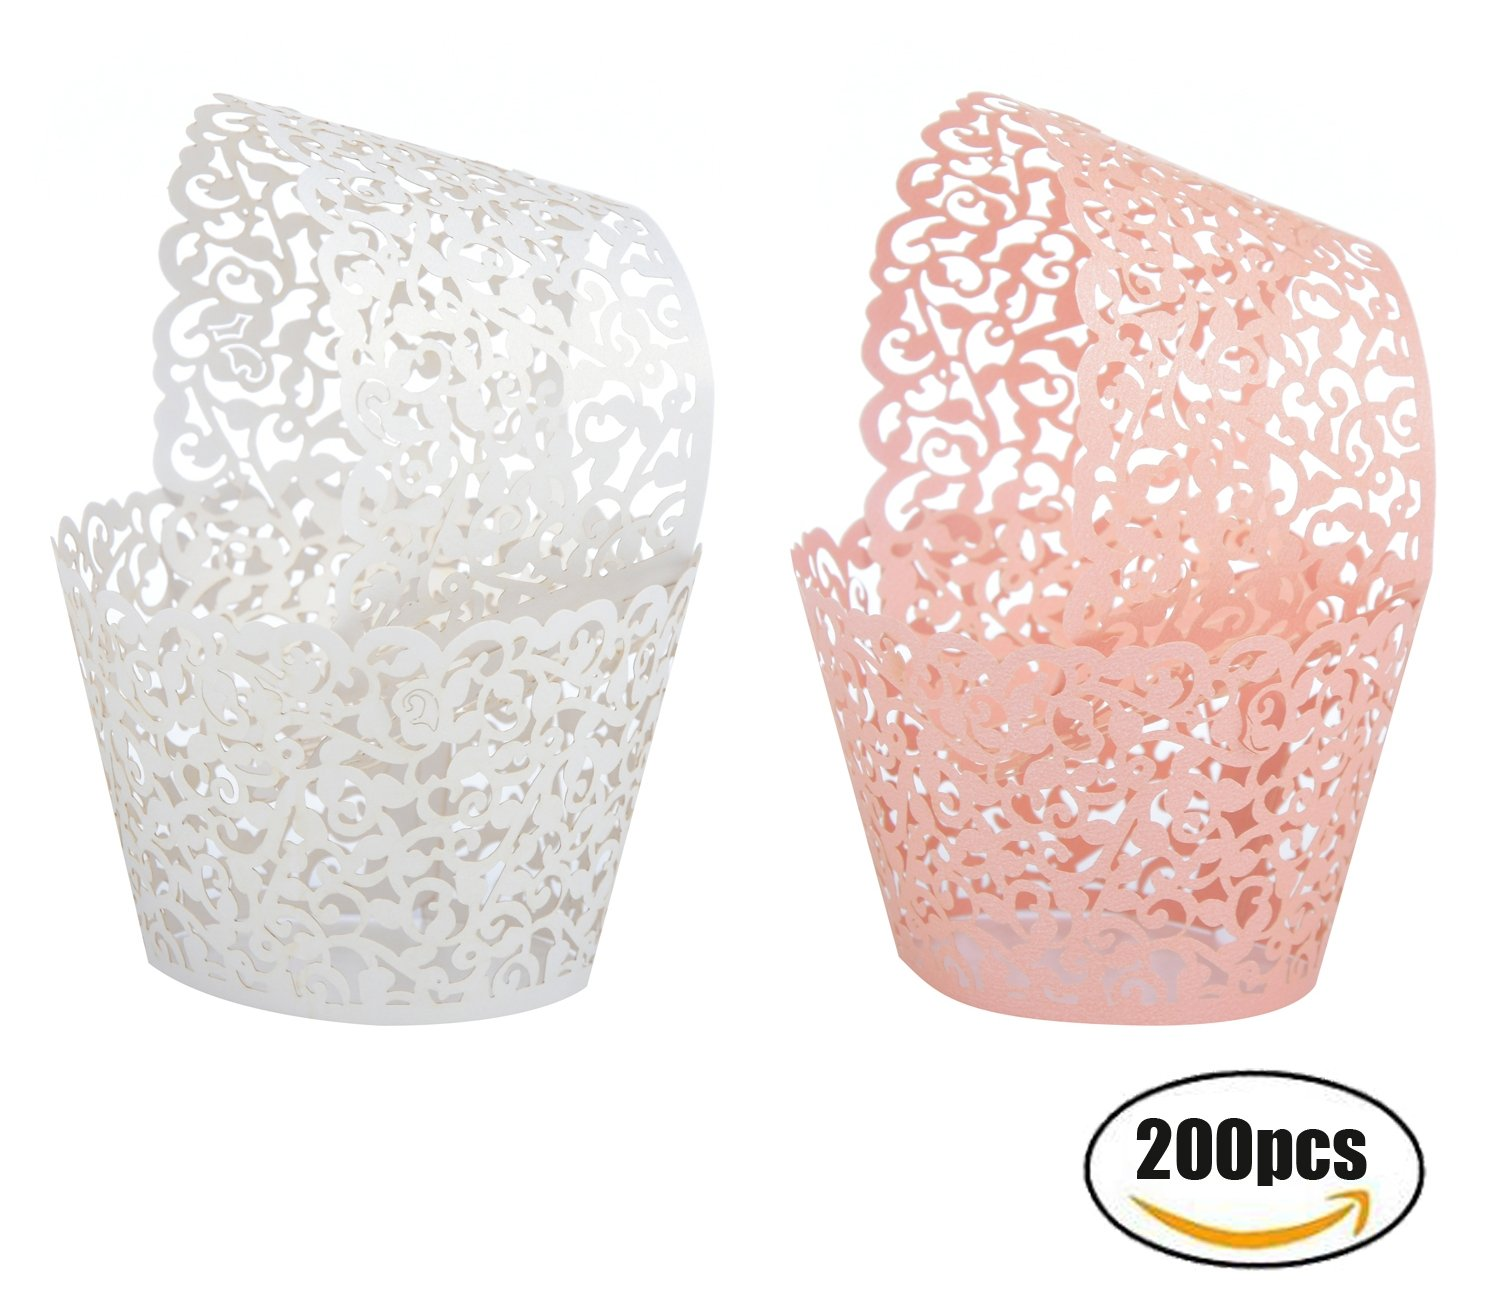 Seamersey 200pcs 2 Colors Cupcake Wrappers Filigree Artistic Bake Cake Paper Cups Little Vine Lace Laser Cut Liner Baking Cup Muffin Holders Case Trays for Wedding Party Birthday Decoration by Seamersey